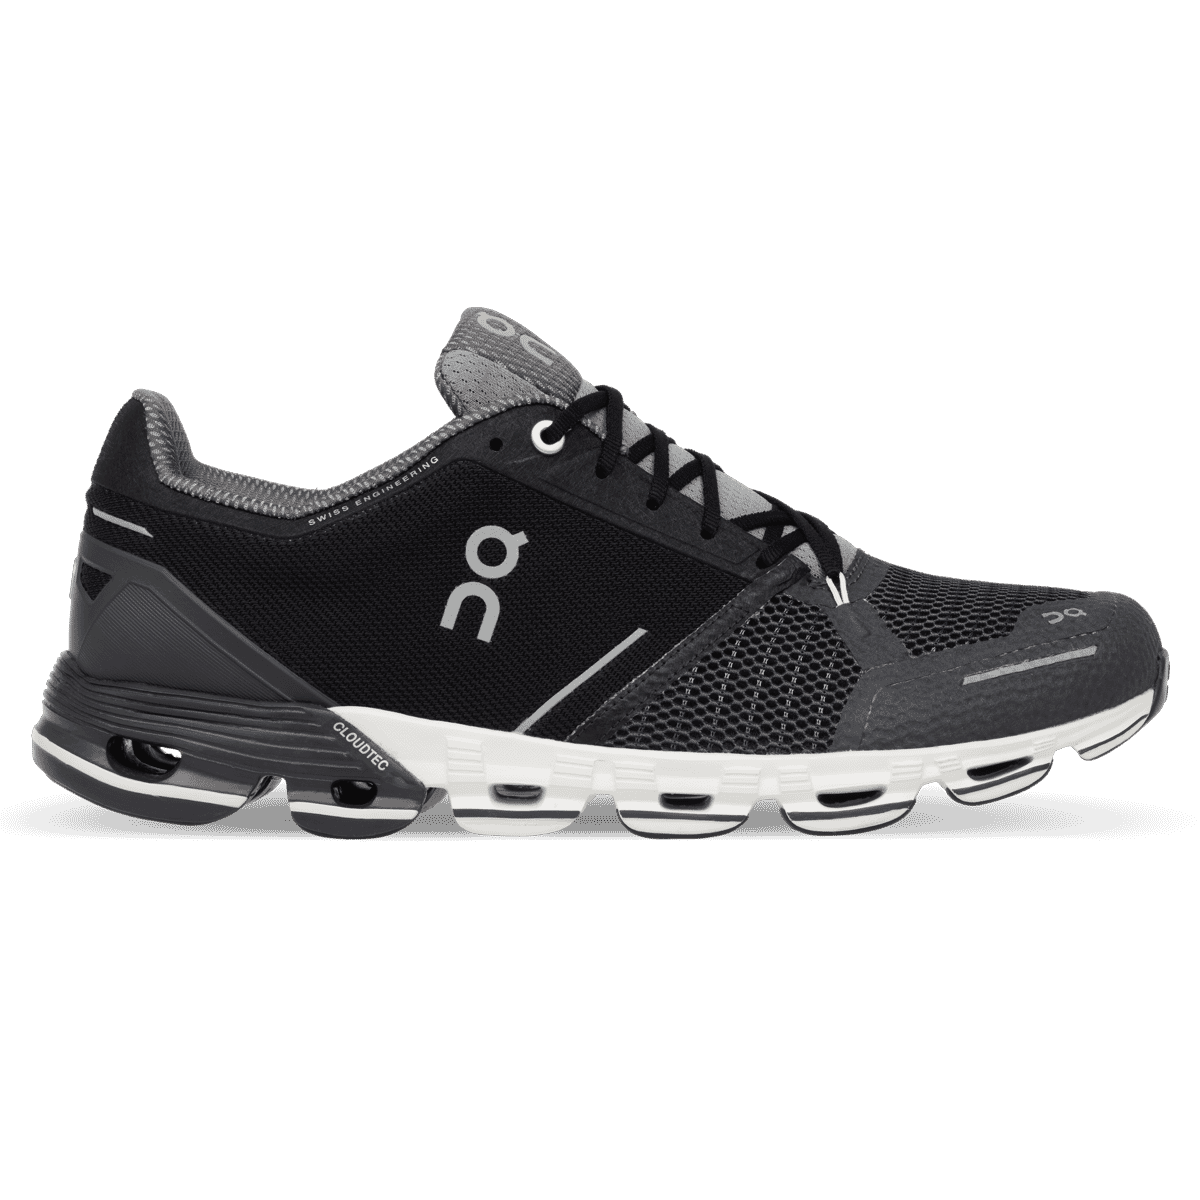 Lightweight Stability Stability Running Shoes Shoes Lightweight CloudflyerOn Lightweight Stability Running CloudflyerOn Running Shoes zMjLSUGVqp